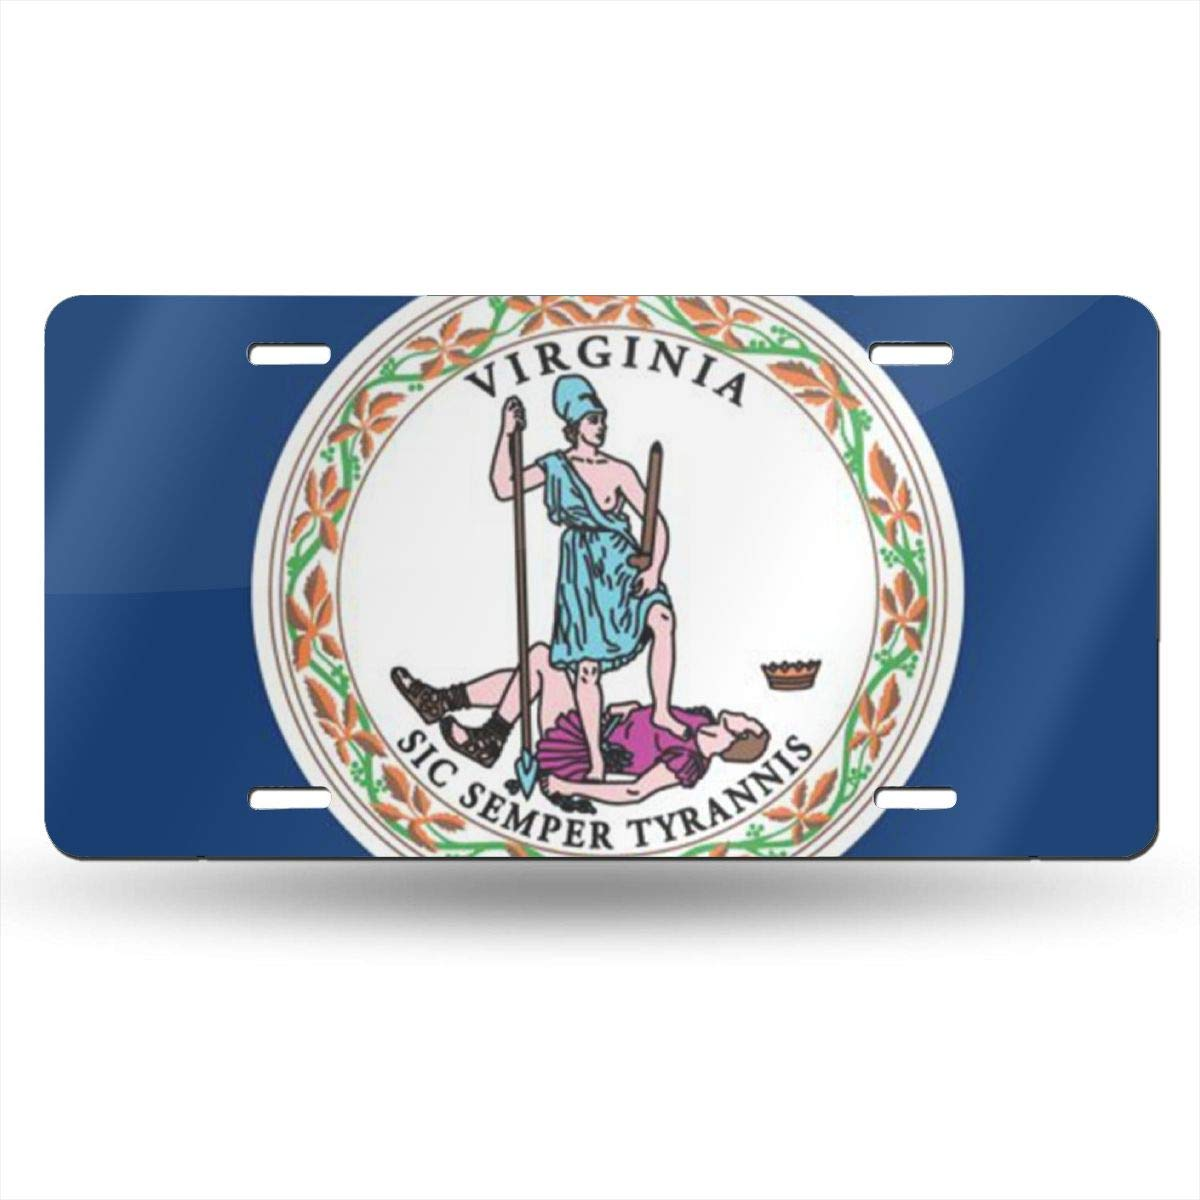 License Plate Covers & Frames PIOPIEK Virginia State Flag US License Plate Tag from 50 States in The United States,Customized Unique Printed License Plate,Suitable for All Cars,Used for Room Decoration,Bar Decoration License Plate Covers & Frames